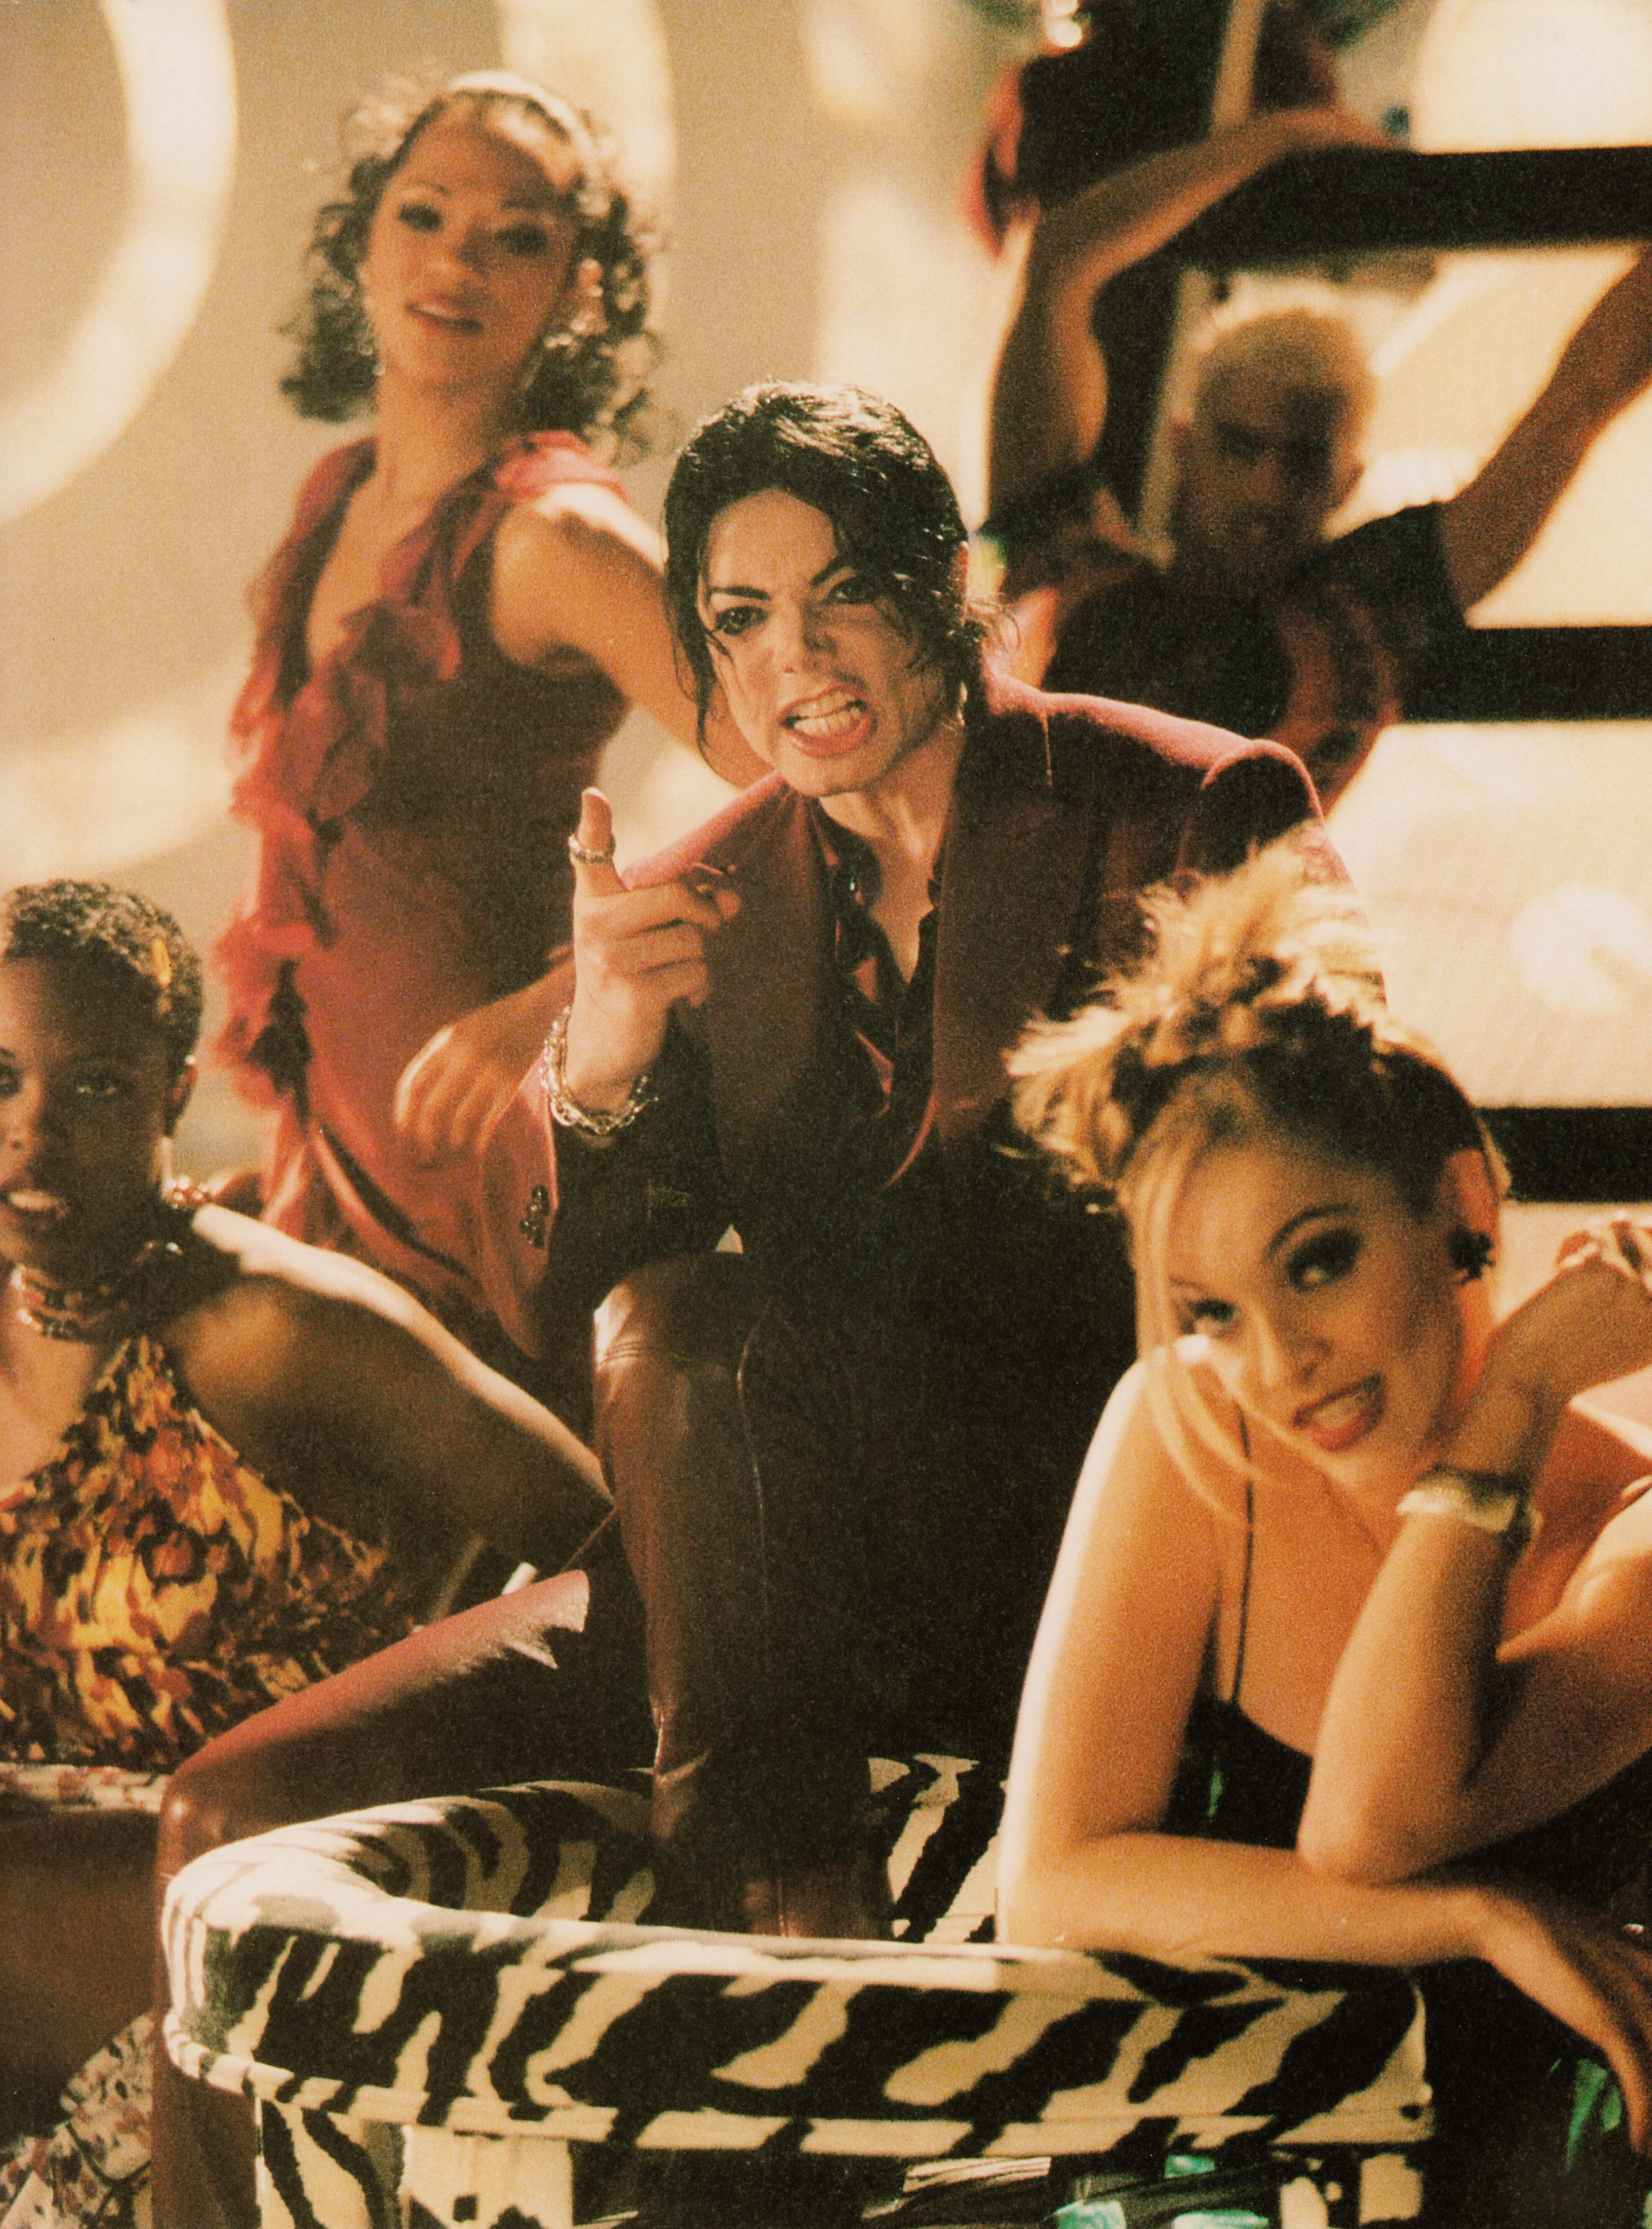 Michael Jackson - HQ Scan - Blood on the dancefloor Short Film